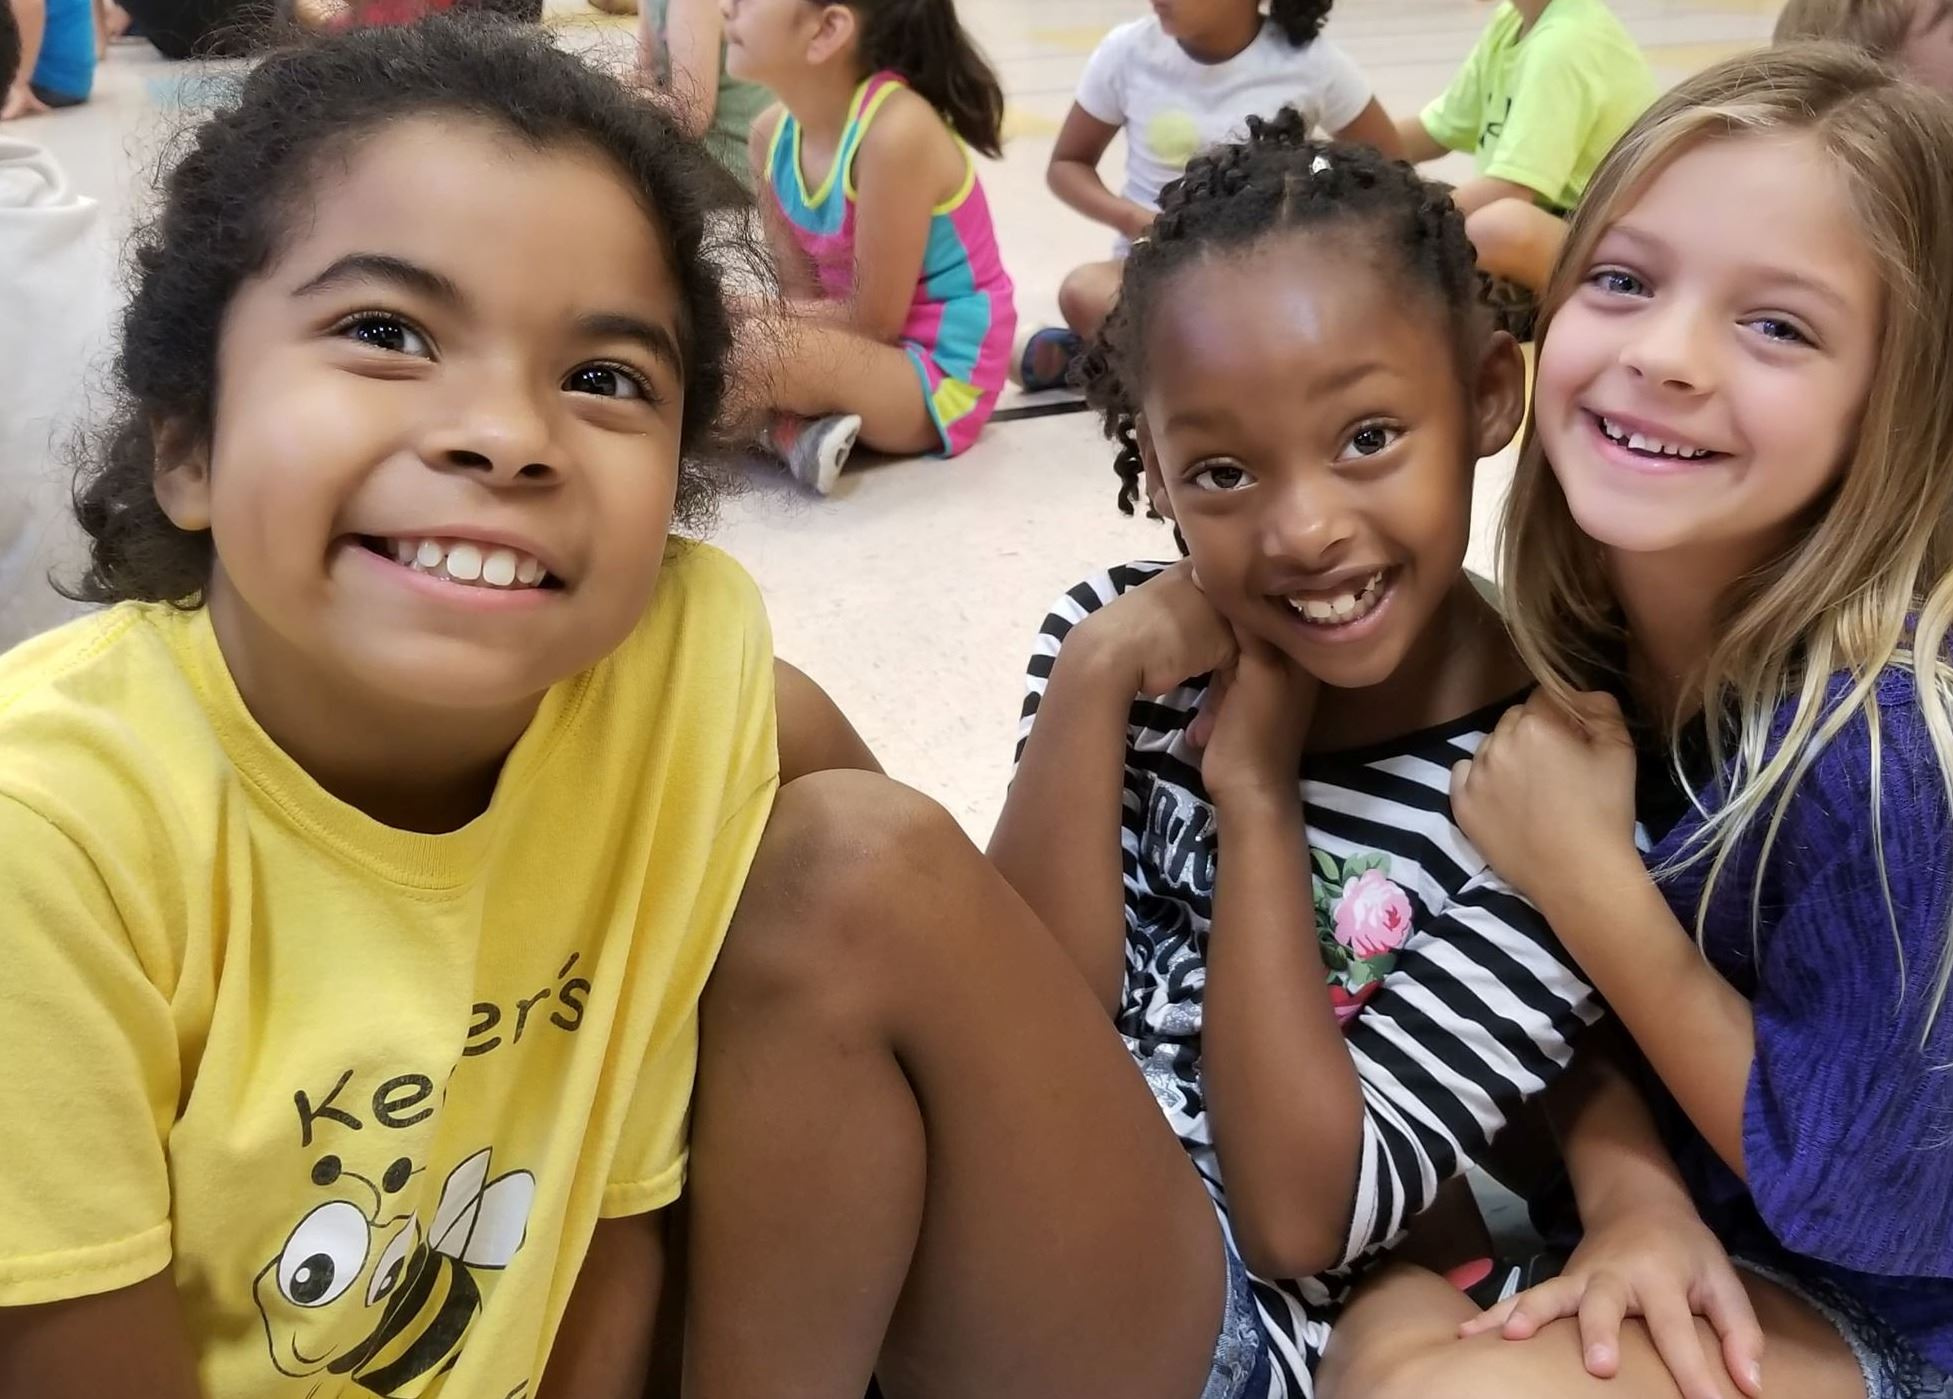 Photo of three smiling children at COSM Summer Camp